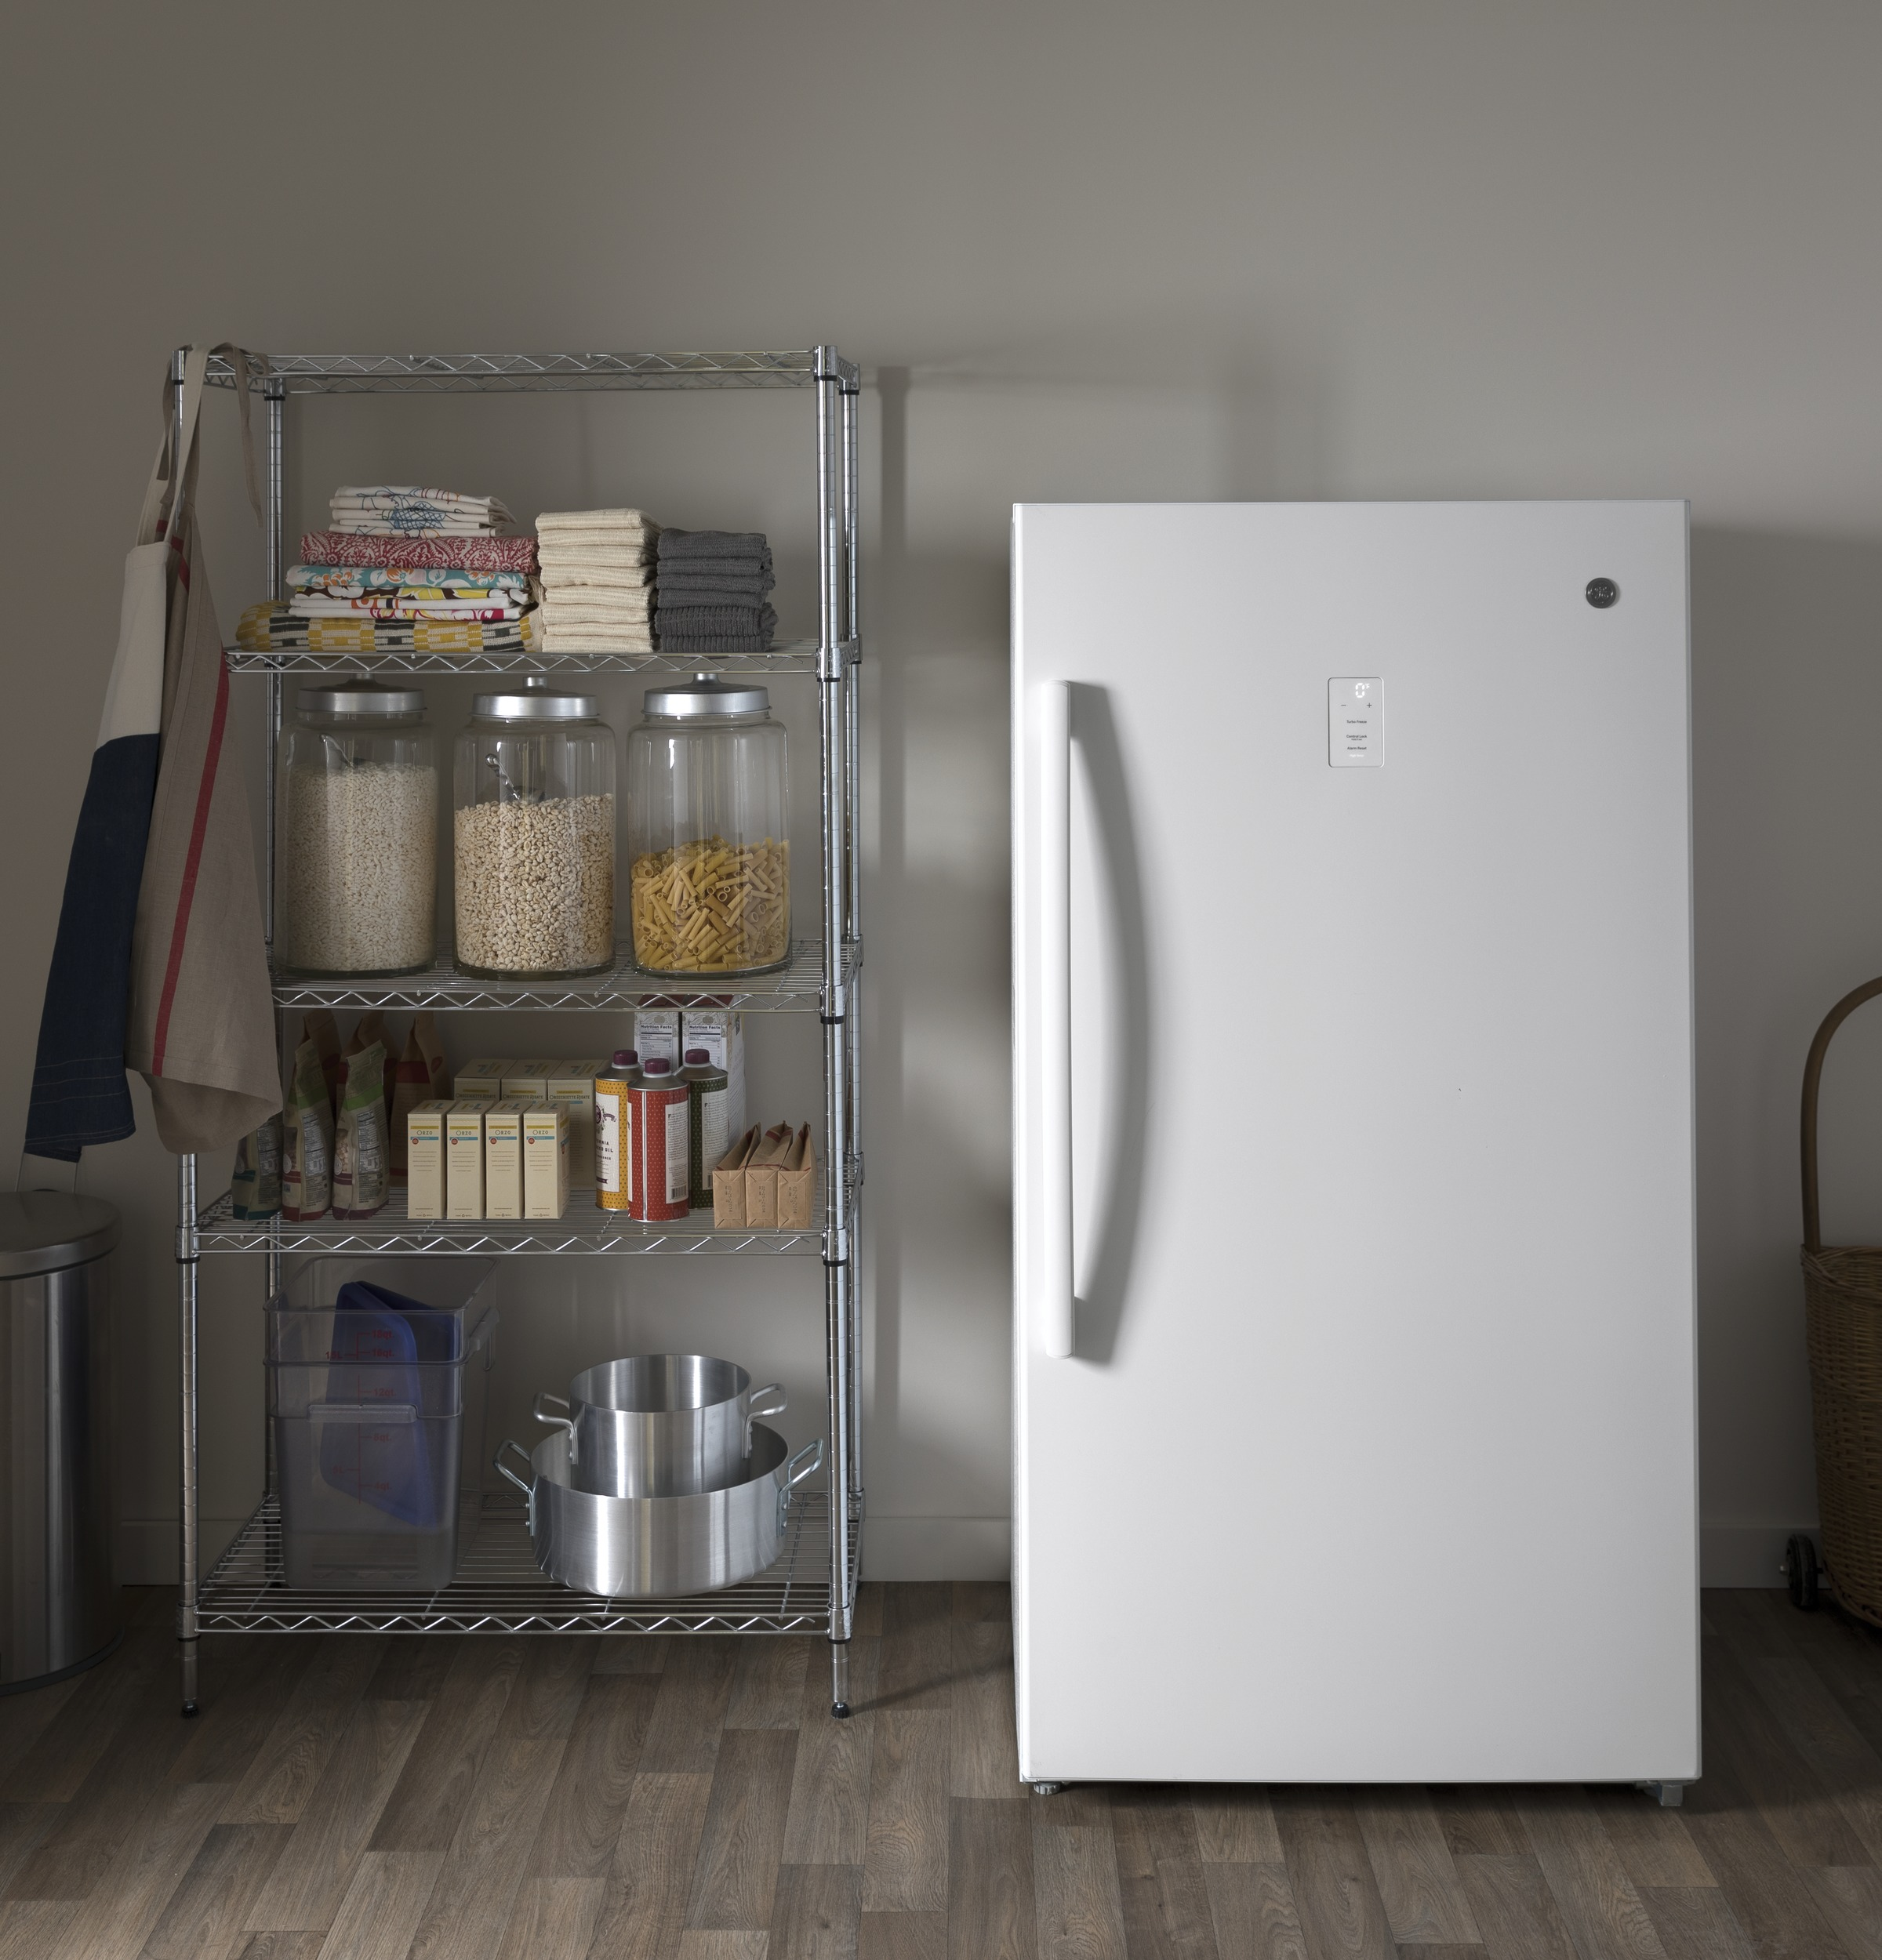 Model: FUF17SMRWW | GE GE® 17.3 Cu. Ft. Frost-Free Upright Freezer